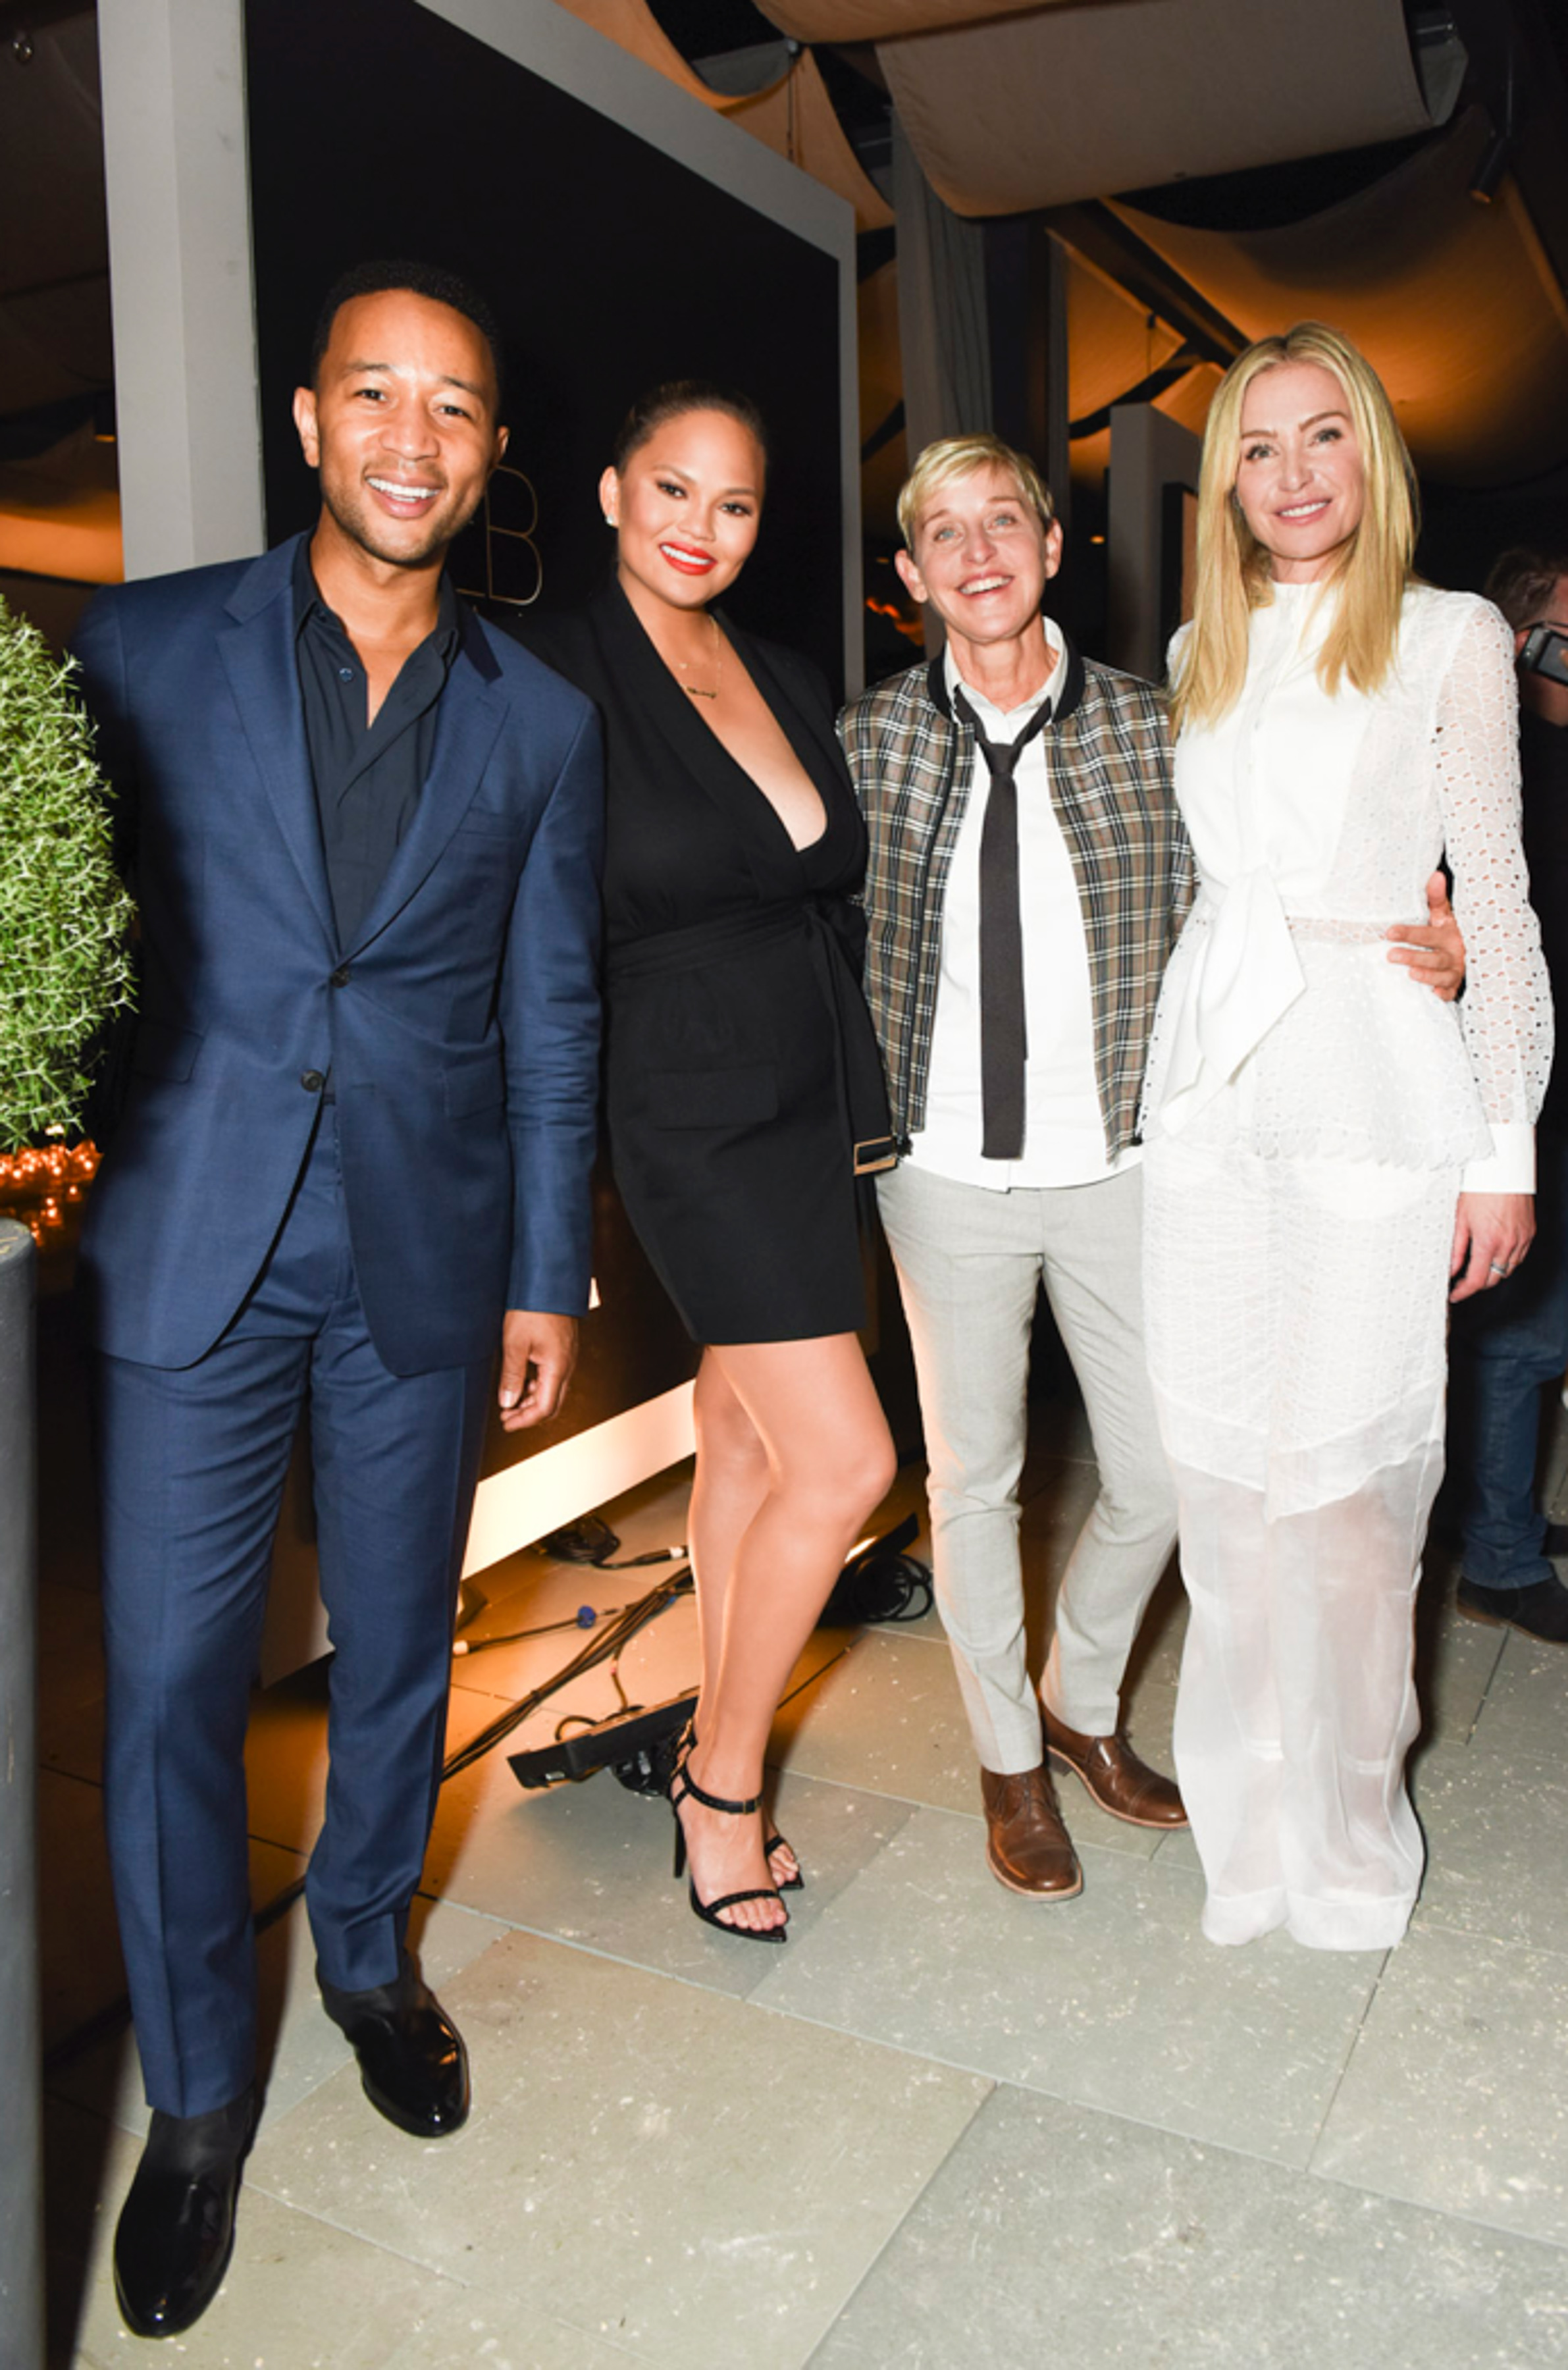 John Legend, Chrissy Teigen, Ellen DeGeneres and Portia de Rossi attend the General Public x RH celebration in California on Jun 27, 2018.